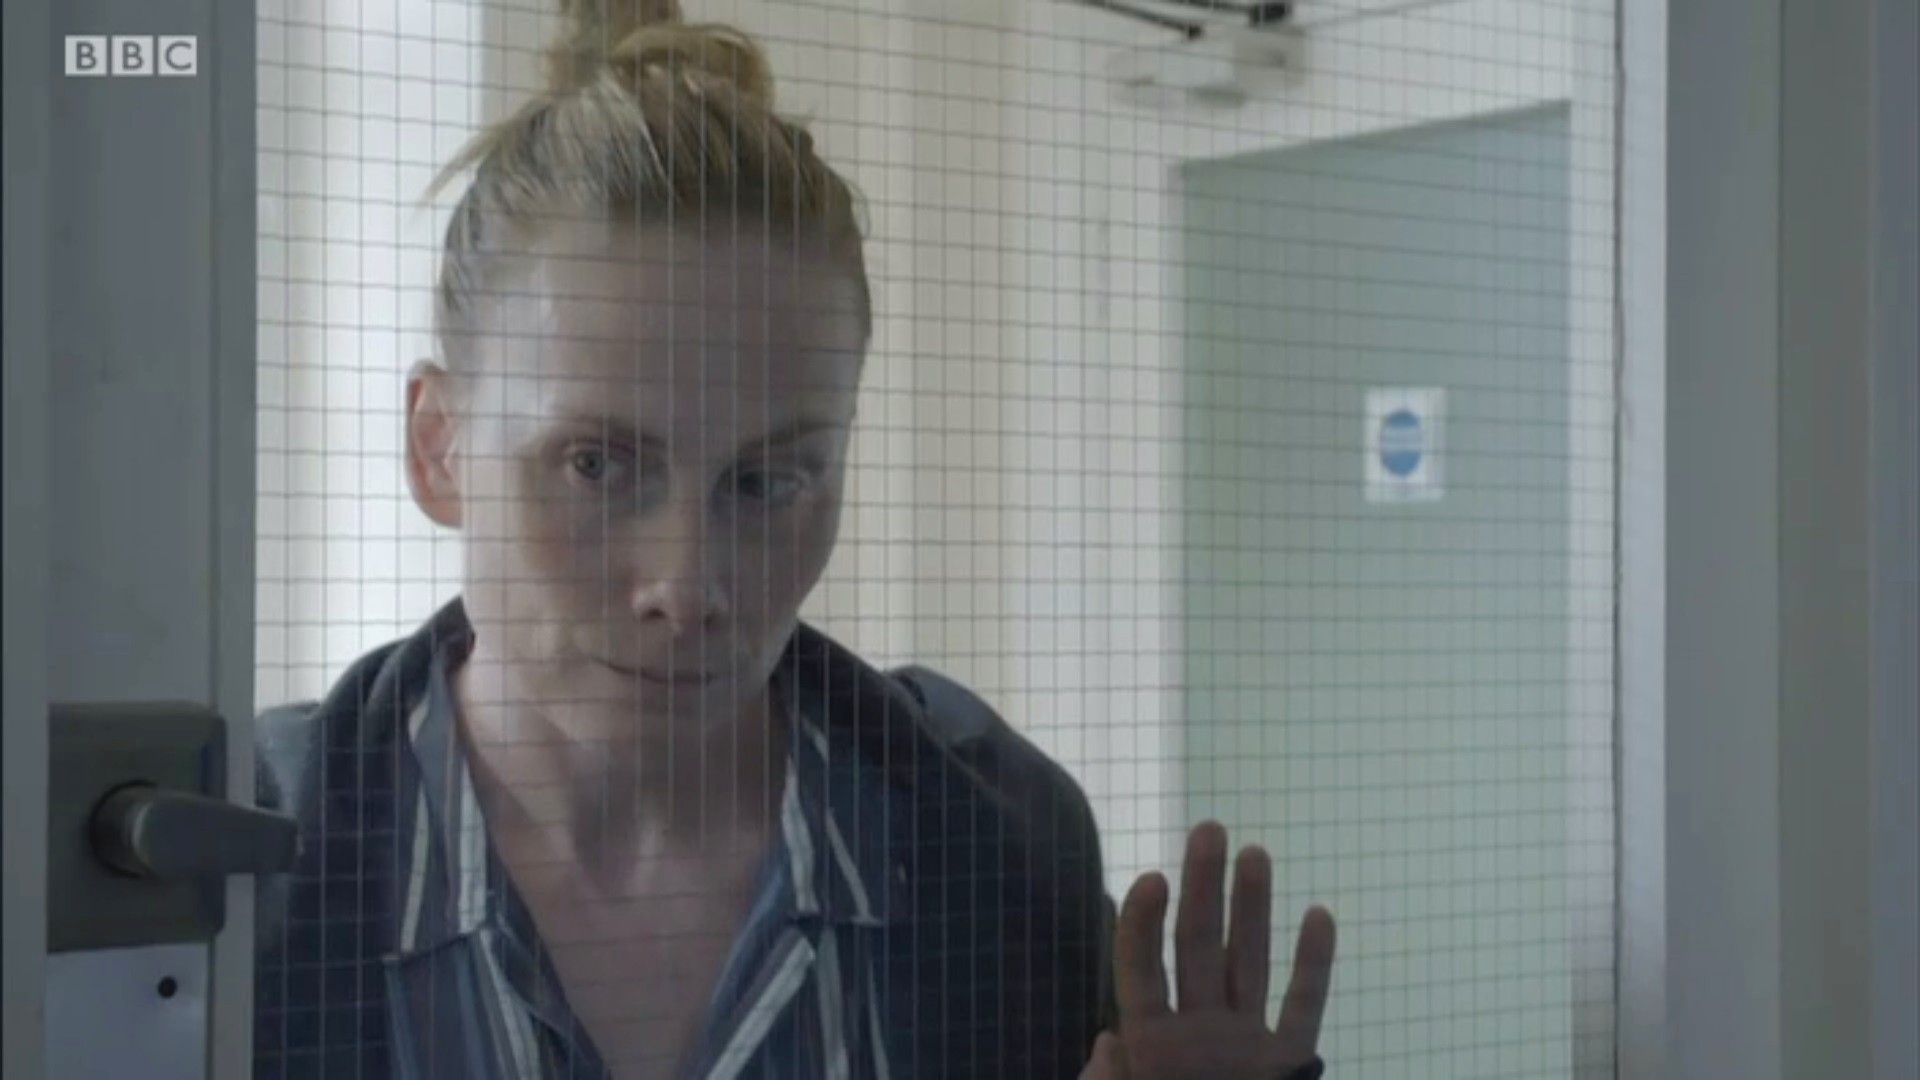 Holby City viewers find Jac Naylor's scenes hard to watch as her mental health storyline continues